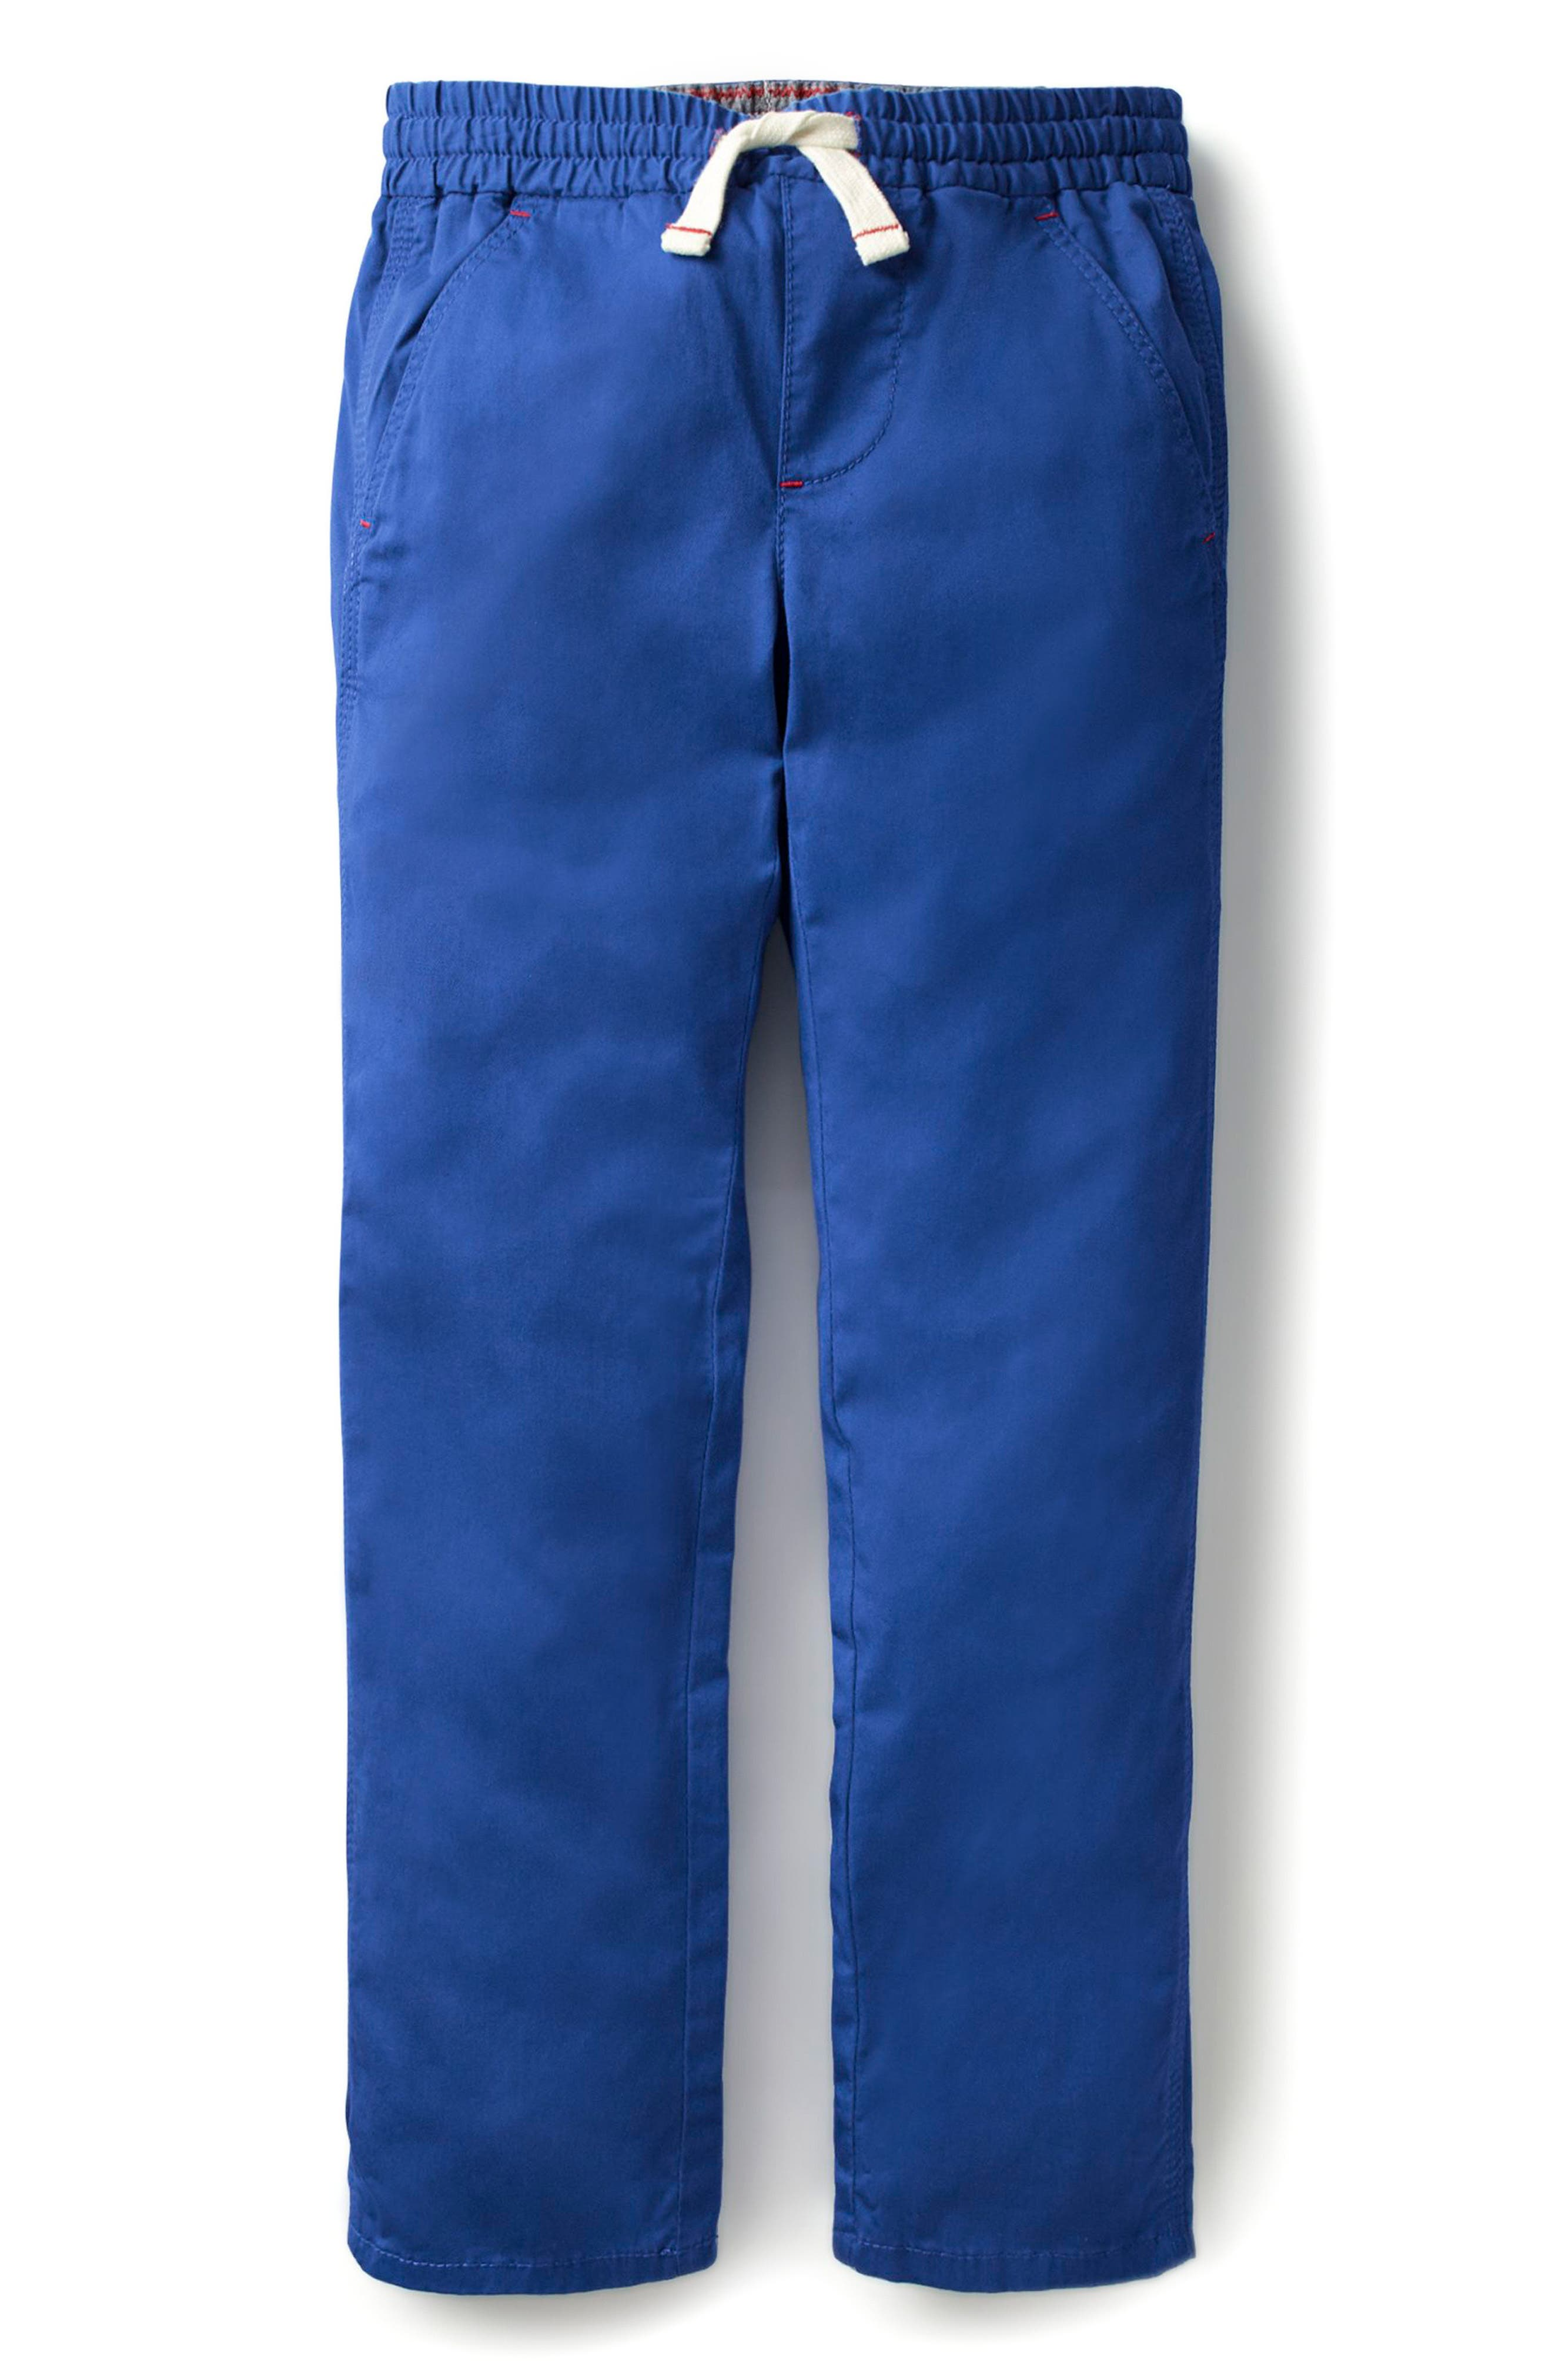 Chino Pants,                         Main,                         color, Orion Blue